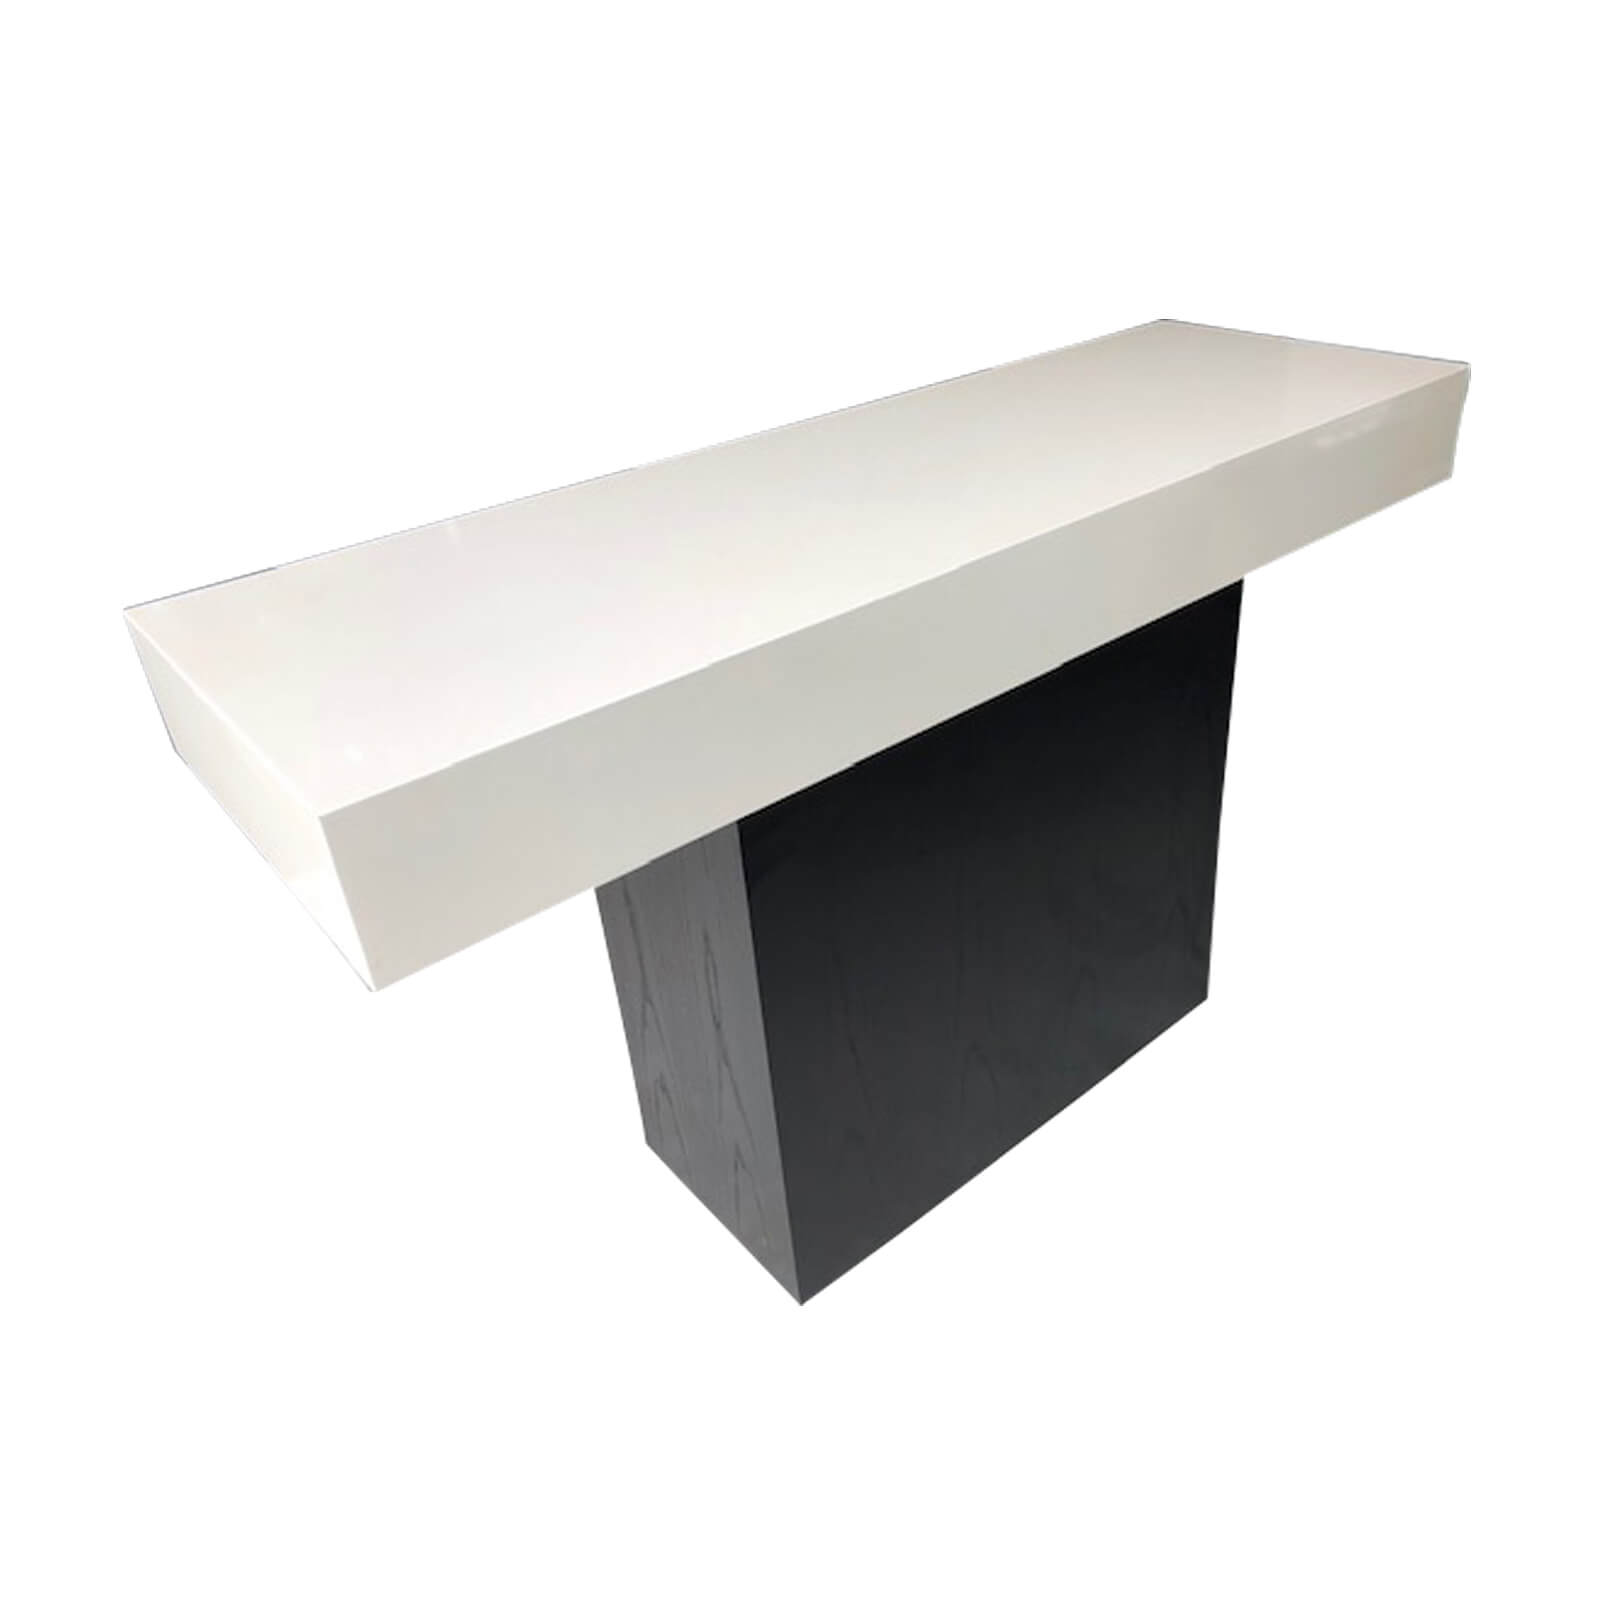 Two Design Lovers console table